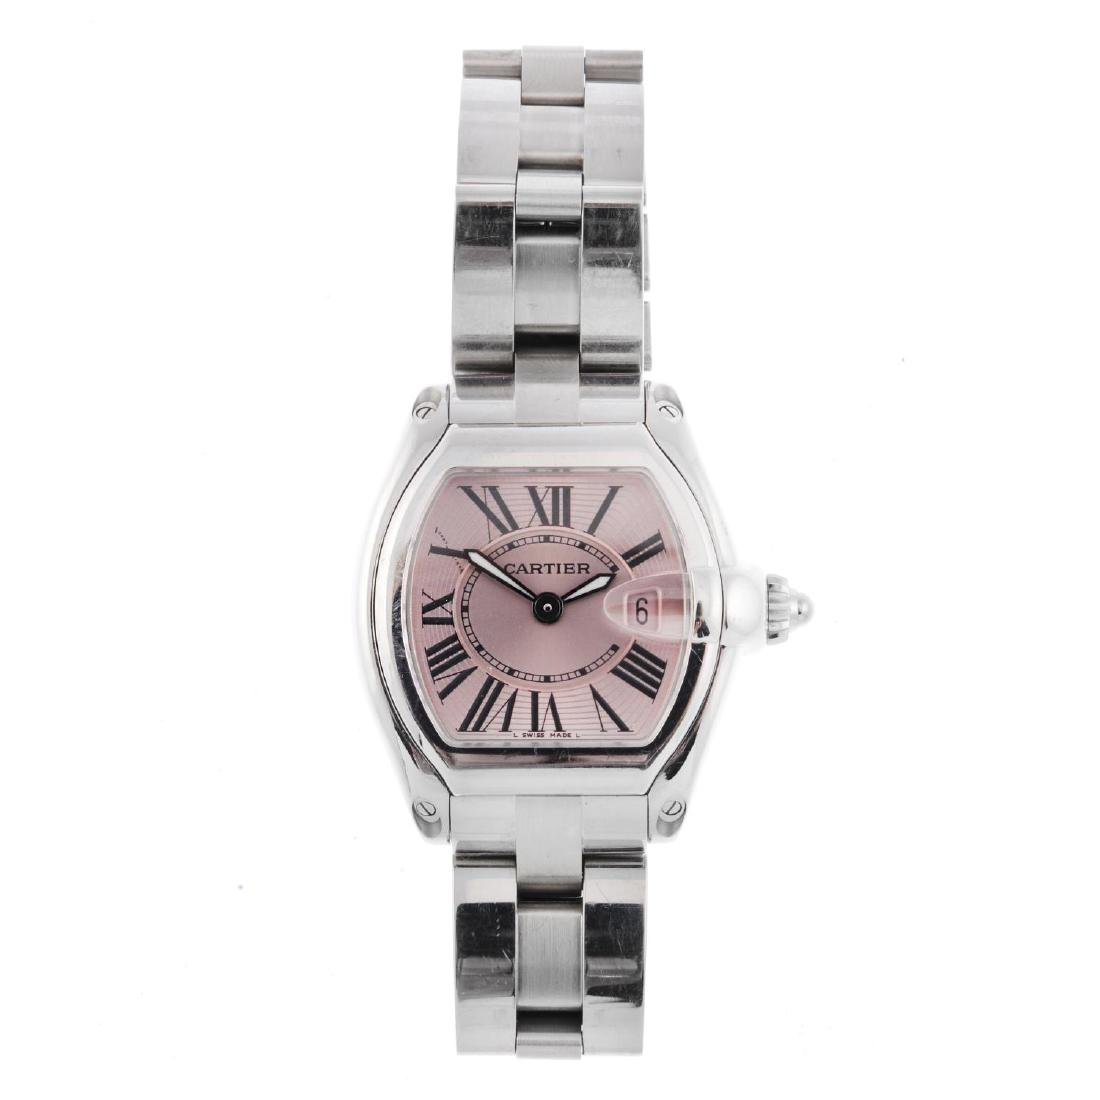 CARTIER - a Roadster bracelet watch. Stainless steel